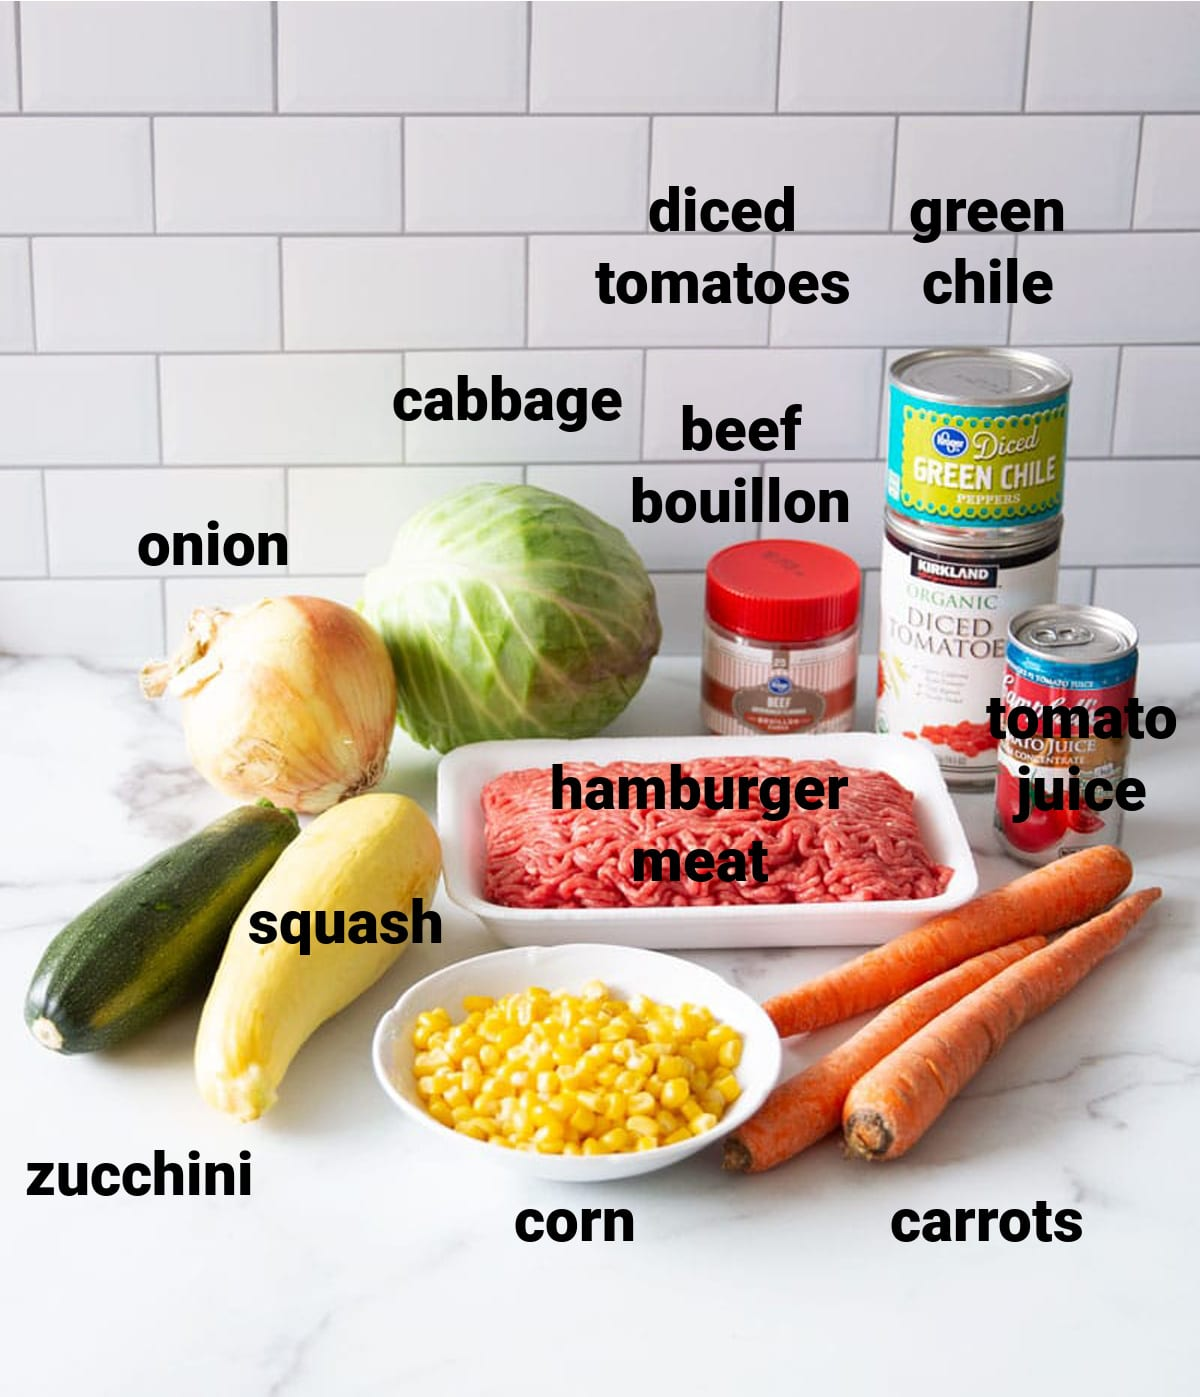 Ground Beef, green chile, bouillon cubes, cabbage, zucchini, squash, corn, carrots on counter.